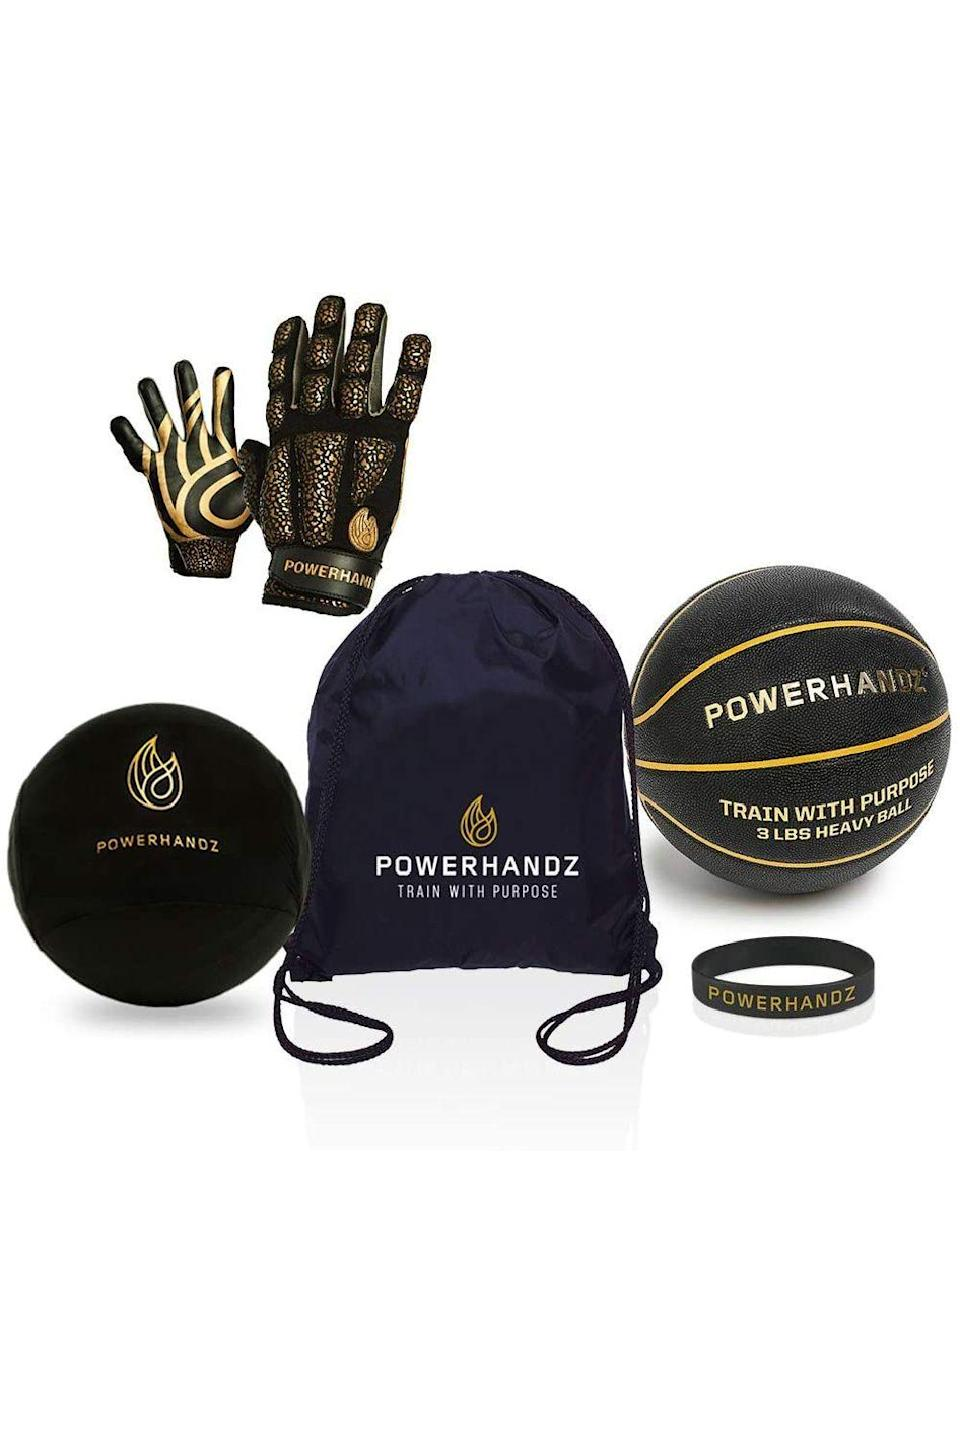 "<p><strong>POWERHANDZ</strong></p><p>amazon.com</p><p><strong>$138.99</strong></p><p><a href=""https://www.amazon.com/dp/B08P55JWZZ?tag=syn-yahoo-20&ascsubtag=%5Bartid%7C10049.g.22628672%5Bsrc%7Cyahoo-us"" rel=""nofollow noopener"" target=""_blank"" data-ylk=""slk:Shop Now"" class=""link rapid-noclick-resp"">Shop Now</a></p><p>Get them this set of training equipment. The weighted gloves, weighted ball, and anti-grip basketball sleeve will definitely help them improve their game. Plus, it comes with a matching wristband and a drawstring bag to carry it all in. </p>"